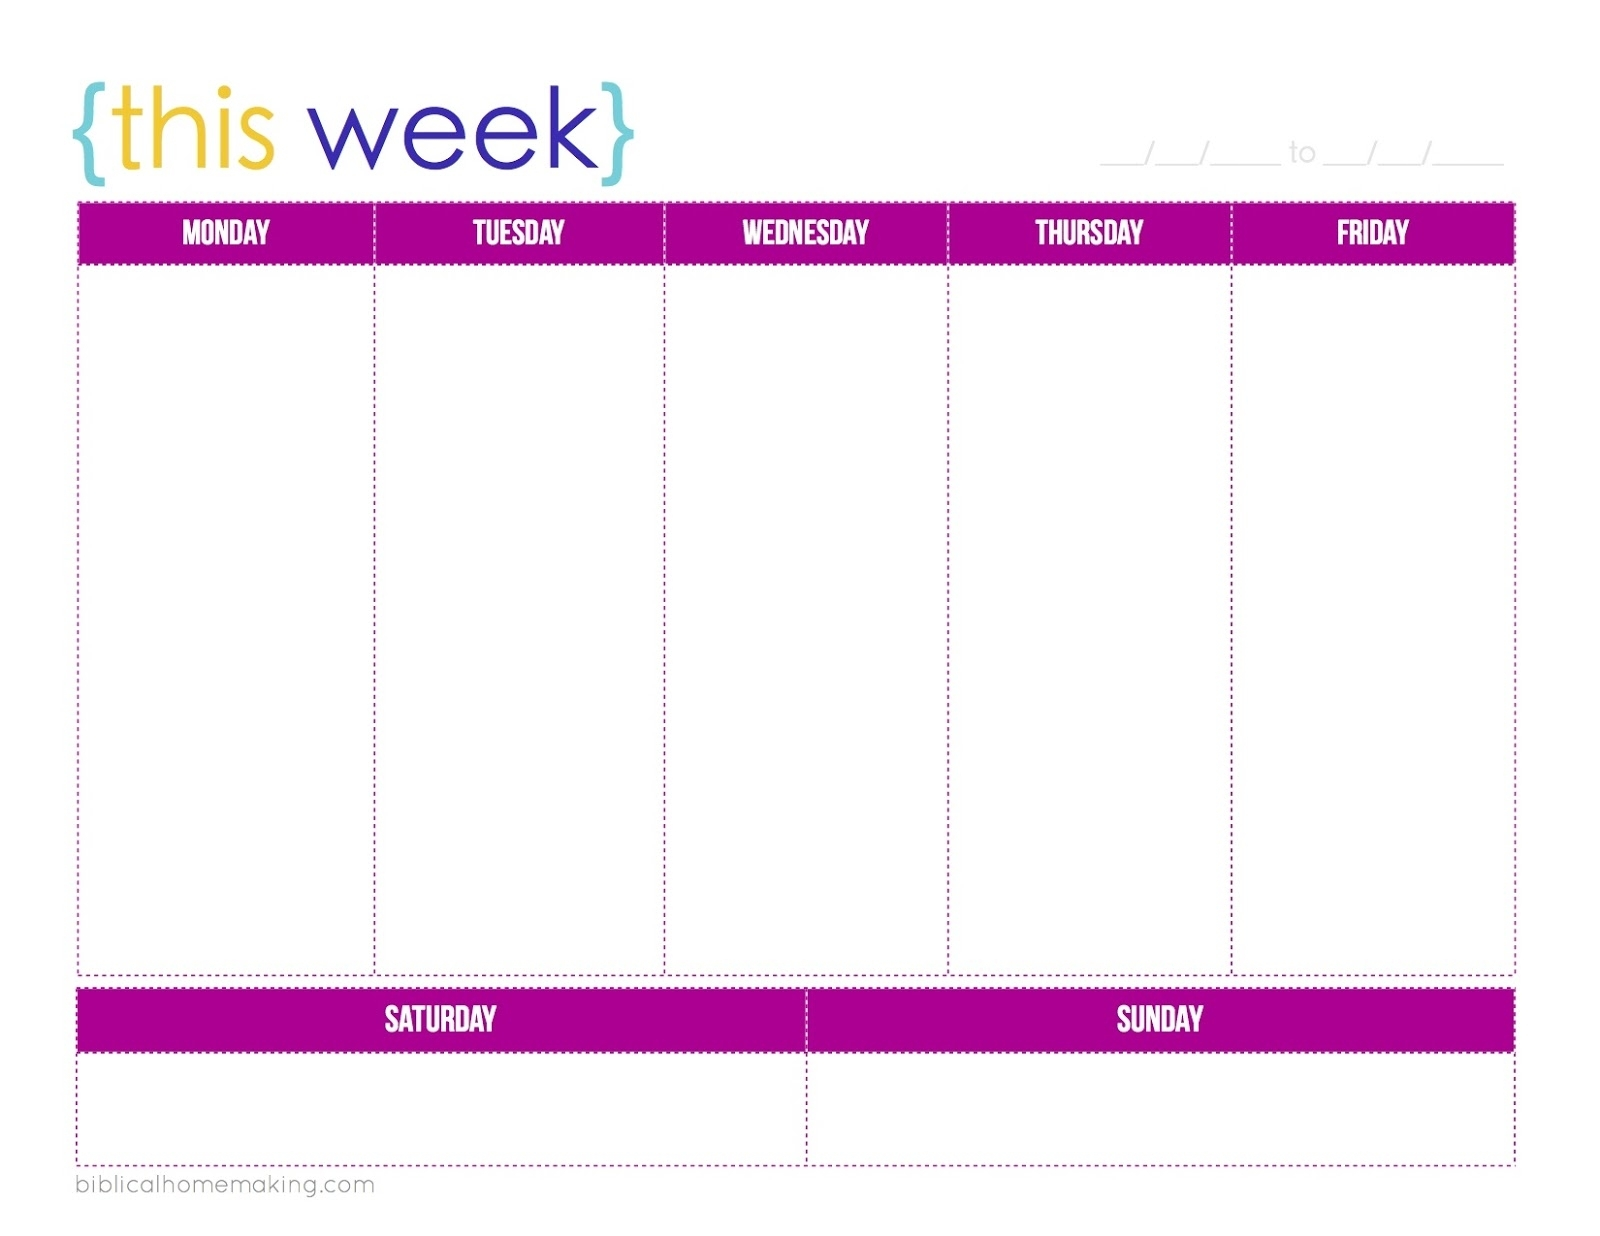 Free Printable Daily Calendar With Time Slots May 2019 Uk